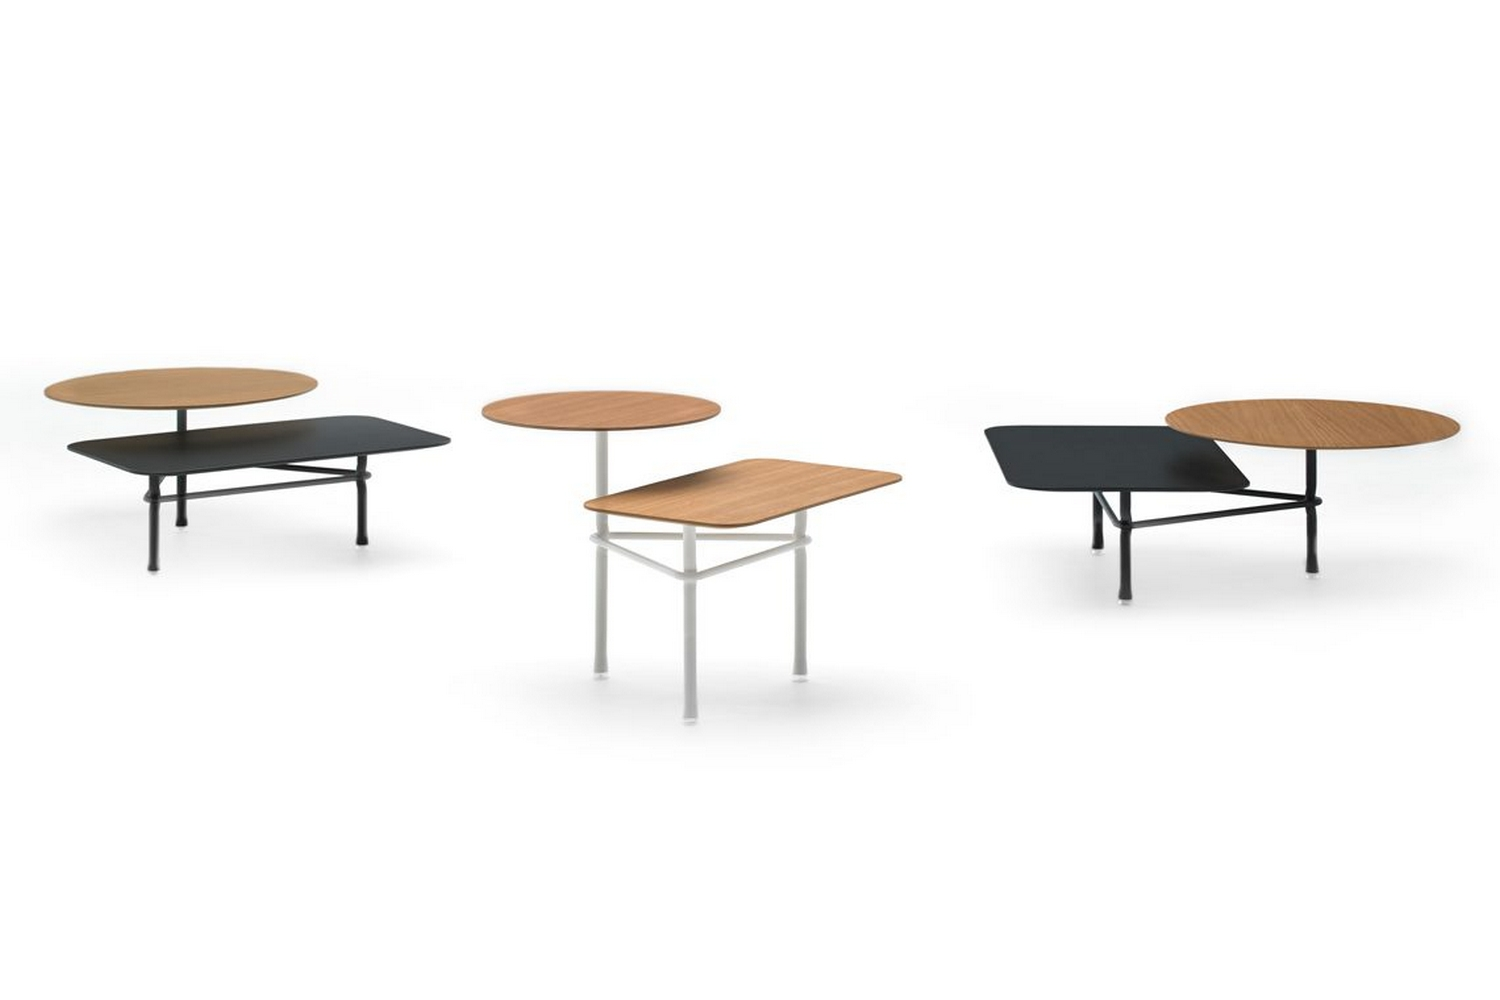 Tiers Table By Patricia Urquiola For Viccarbe Space